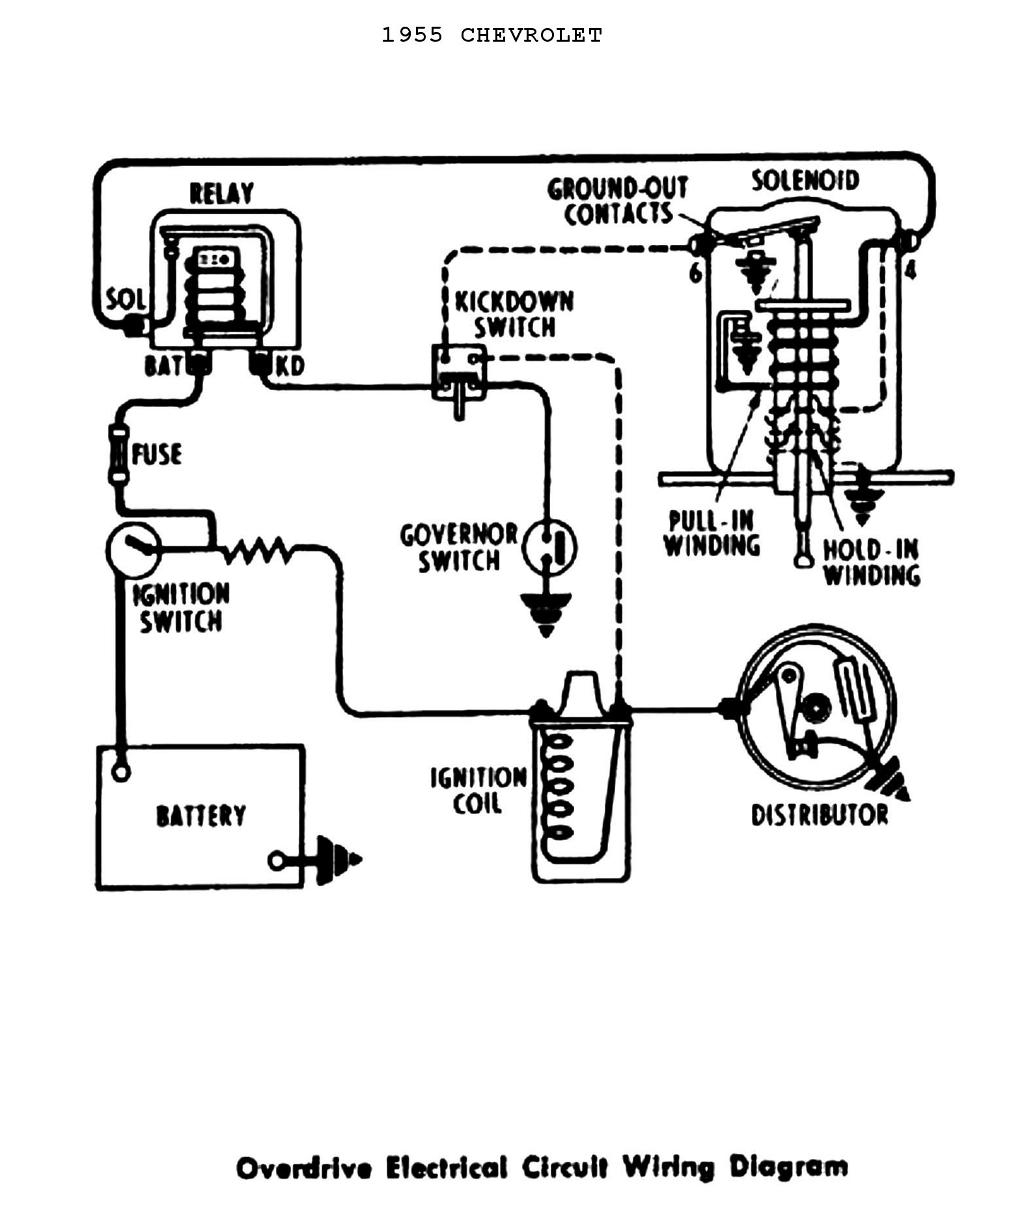 ignition module wiring diagram ignition module wiring diagram 96 02